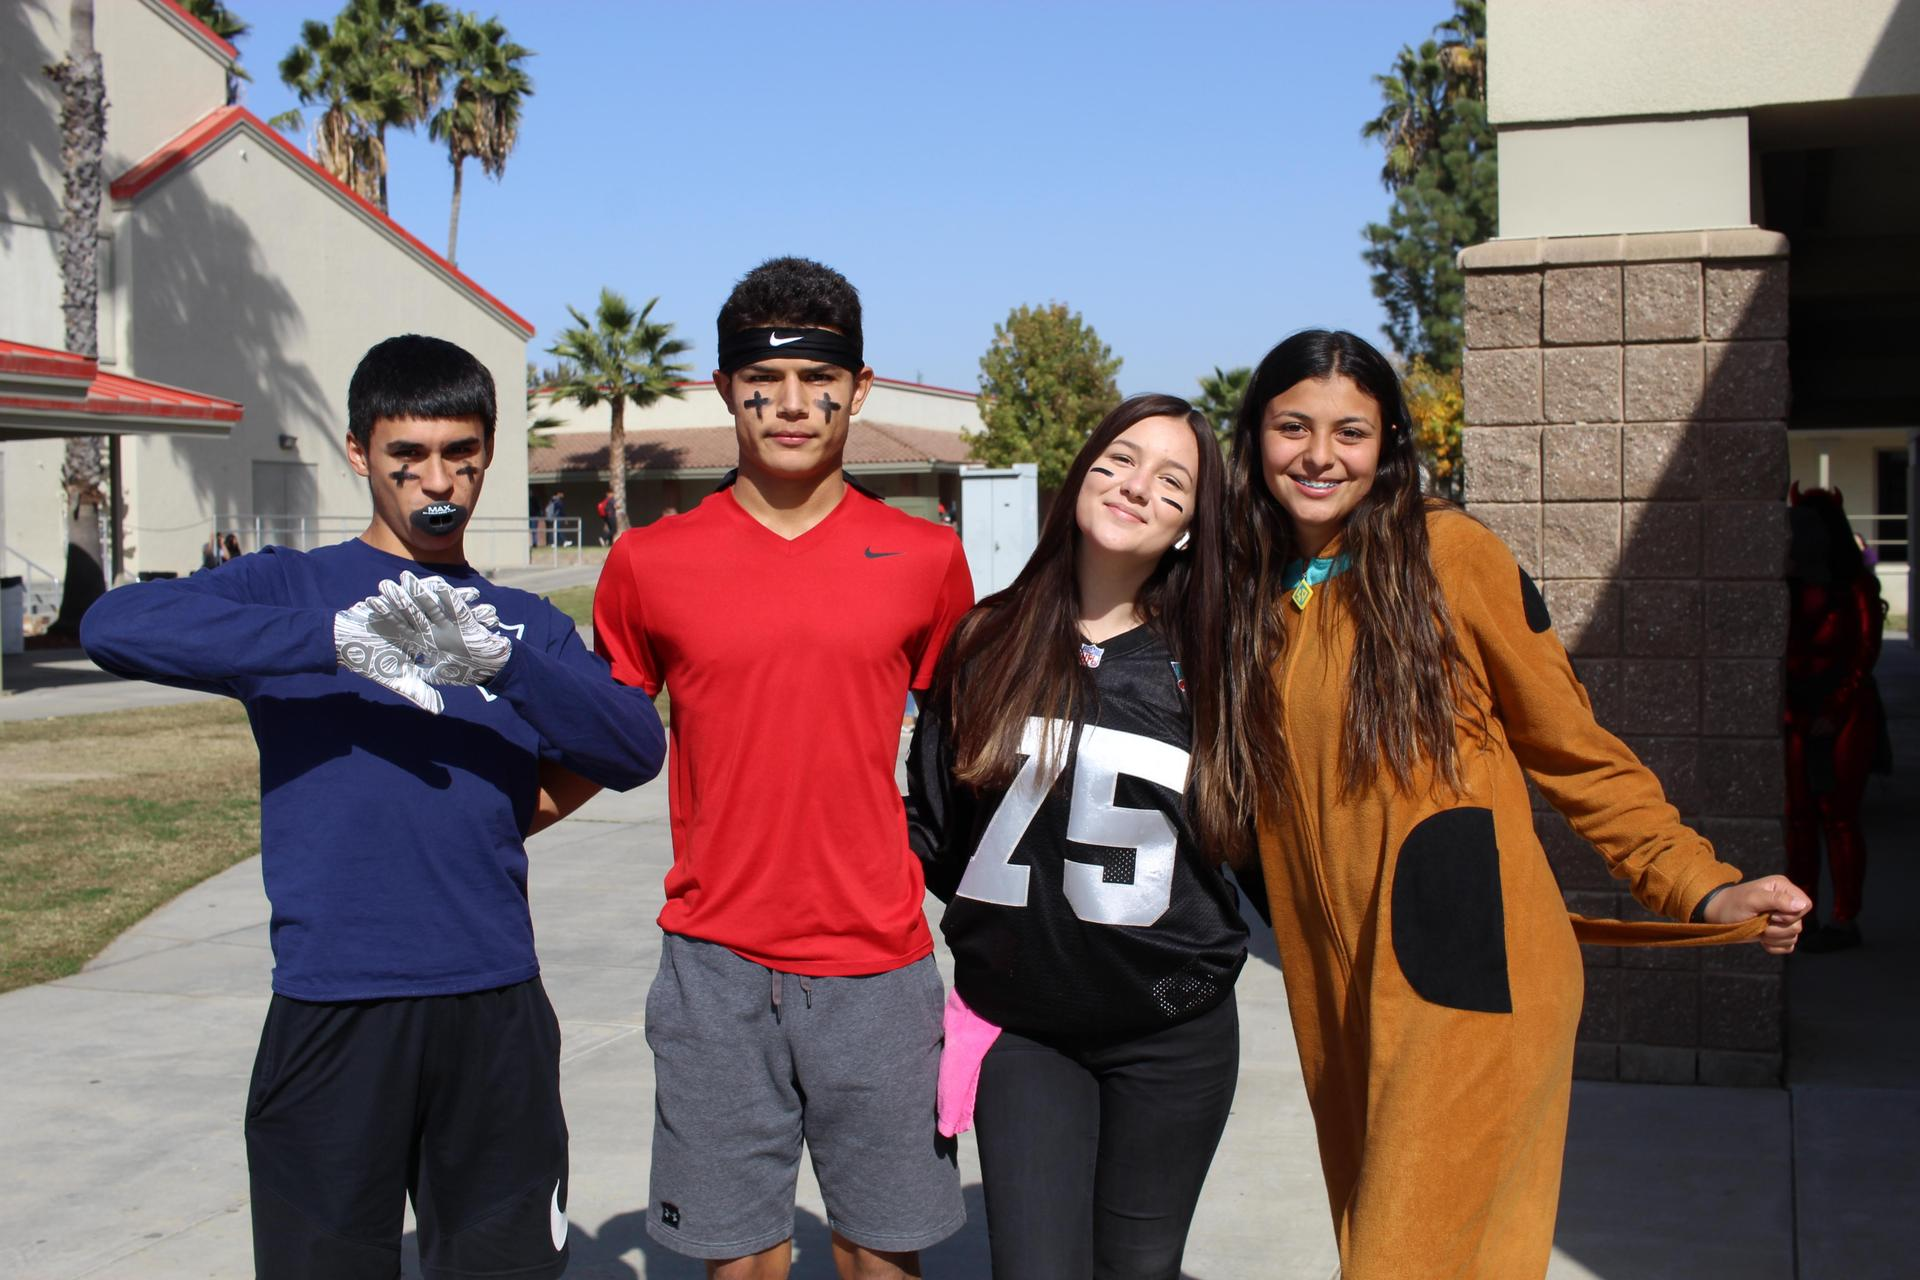 Emanuel Ochoa, Isaac Robles, Emily Valenzuela as football players with Kim Benavides as Scooby Doo